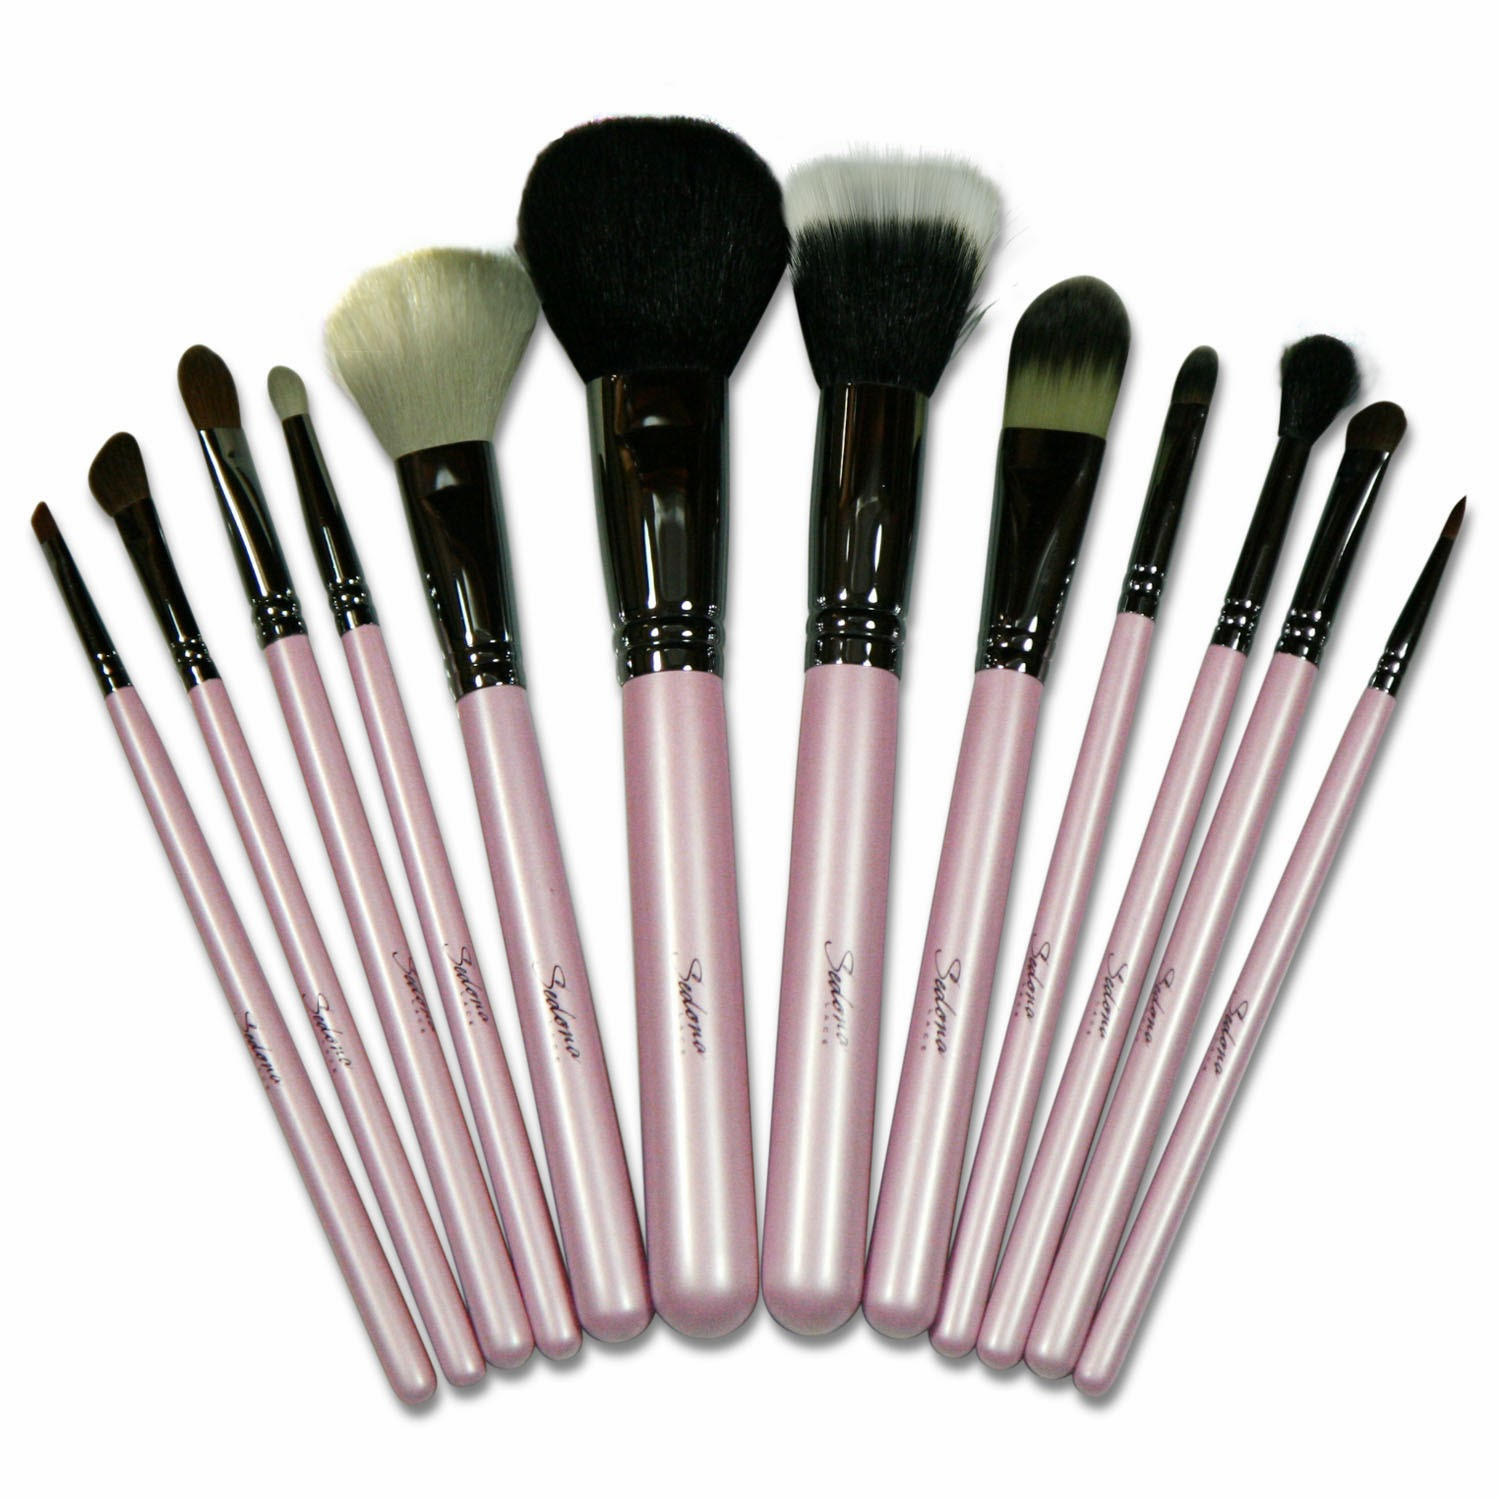 Good Makeup Brushes